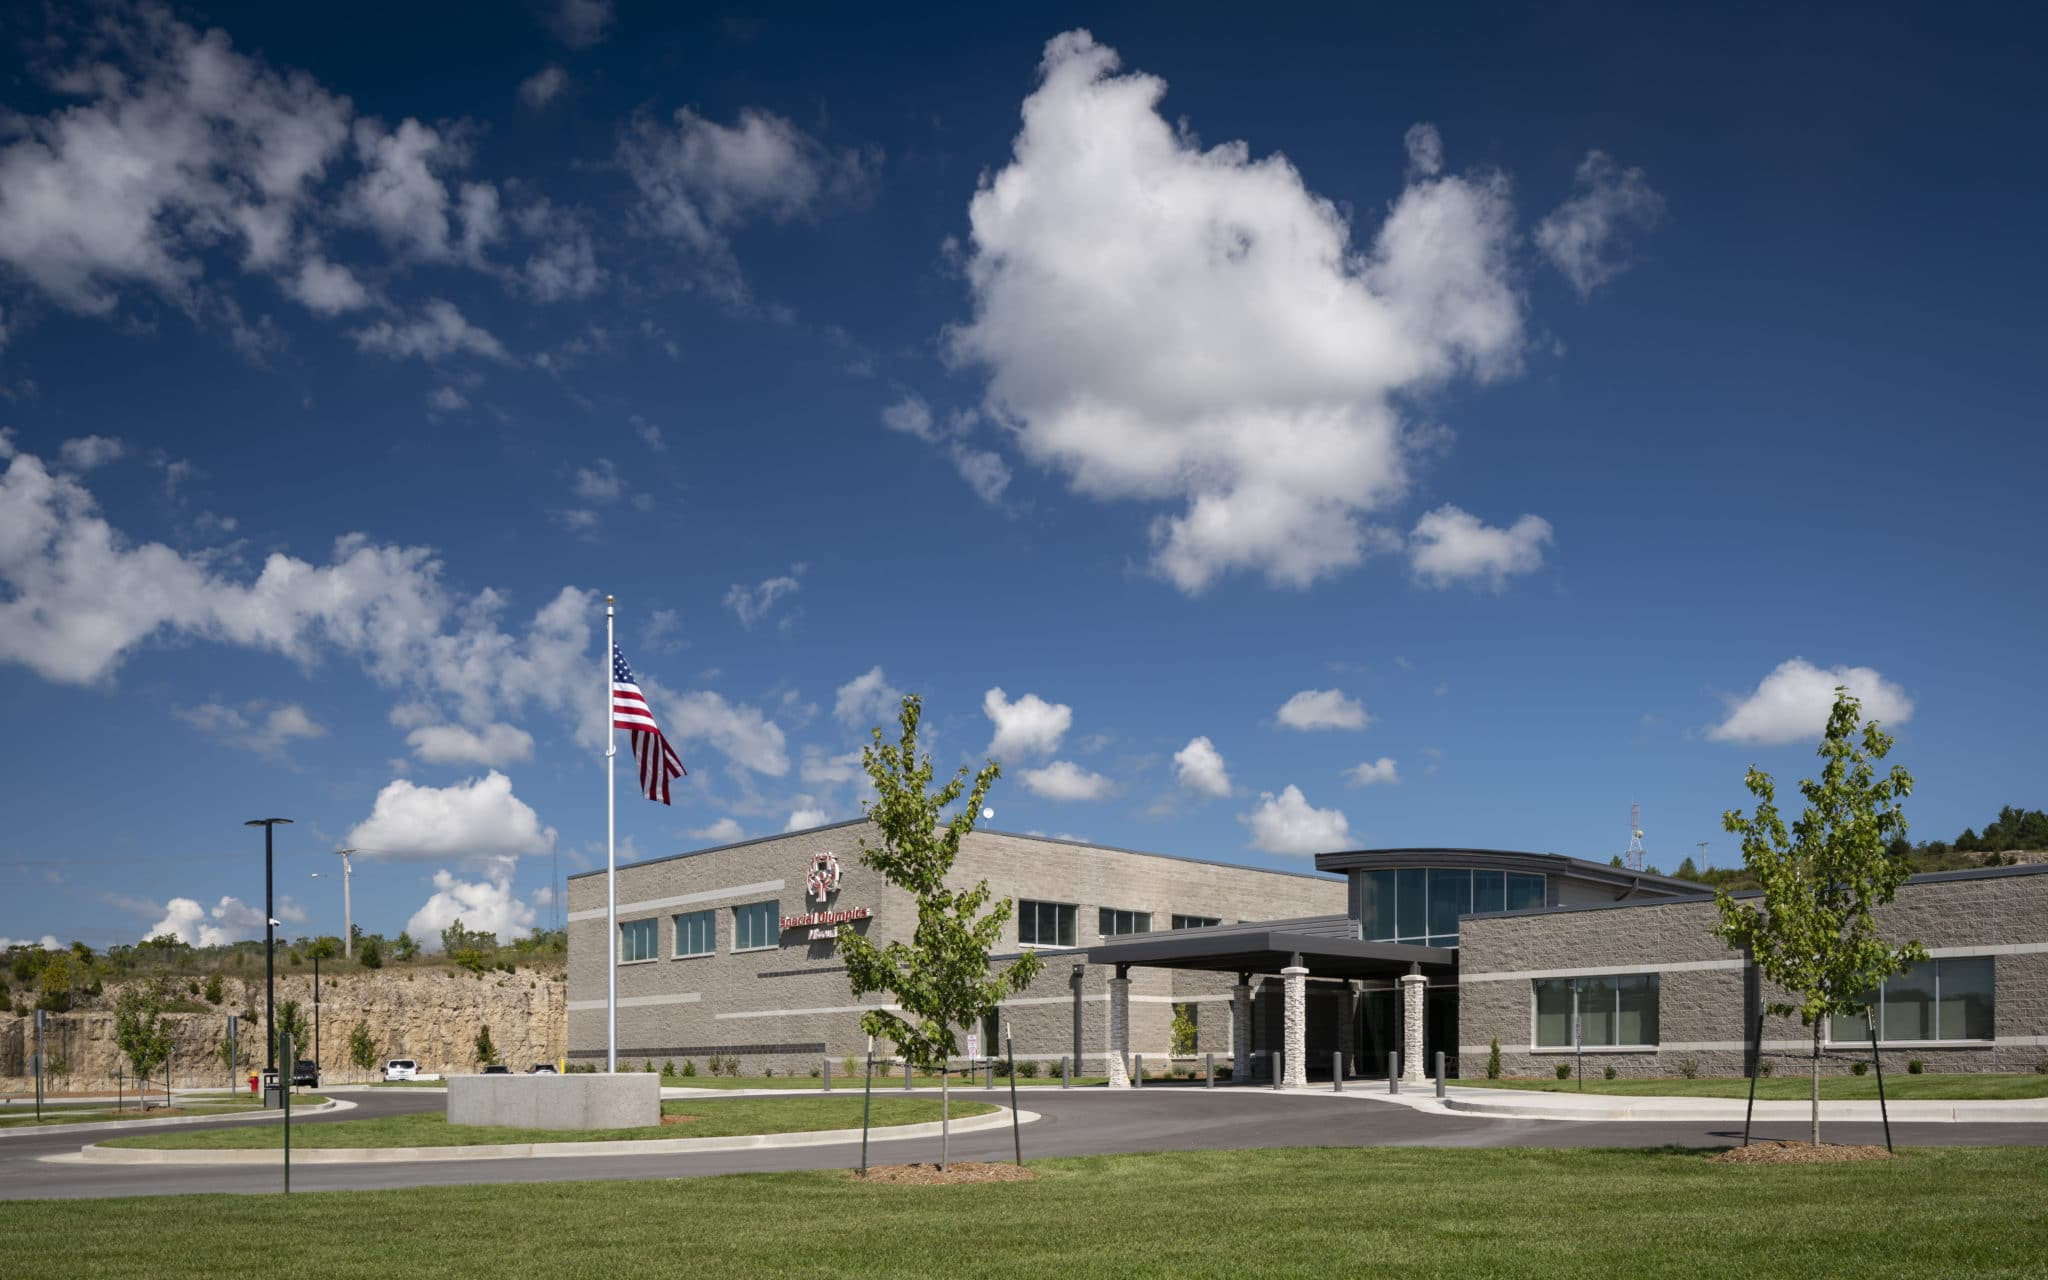 An exterior photo of the front entrance of the Training for Life Campus